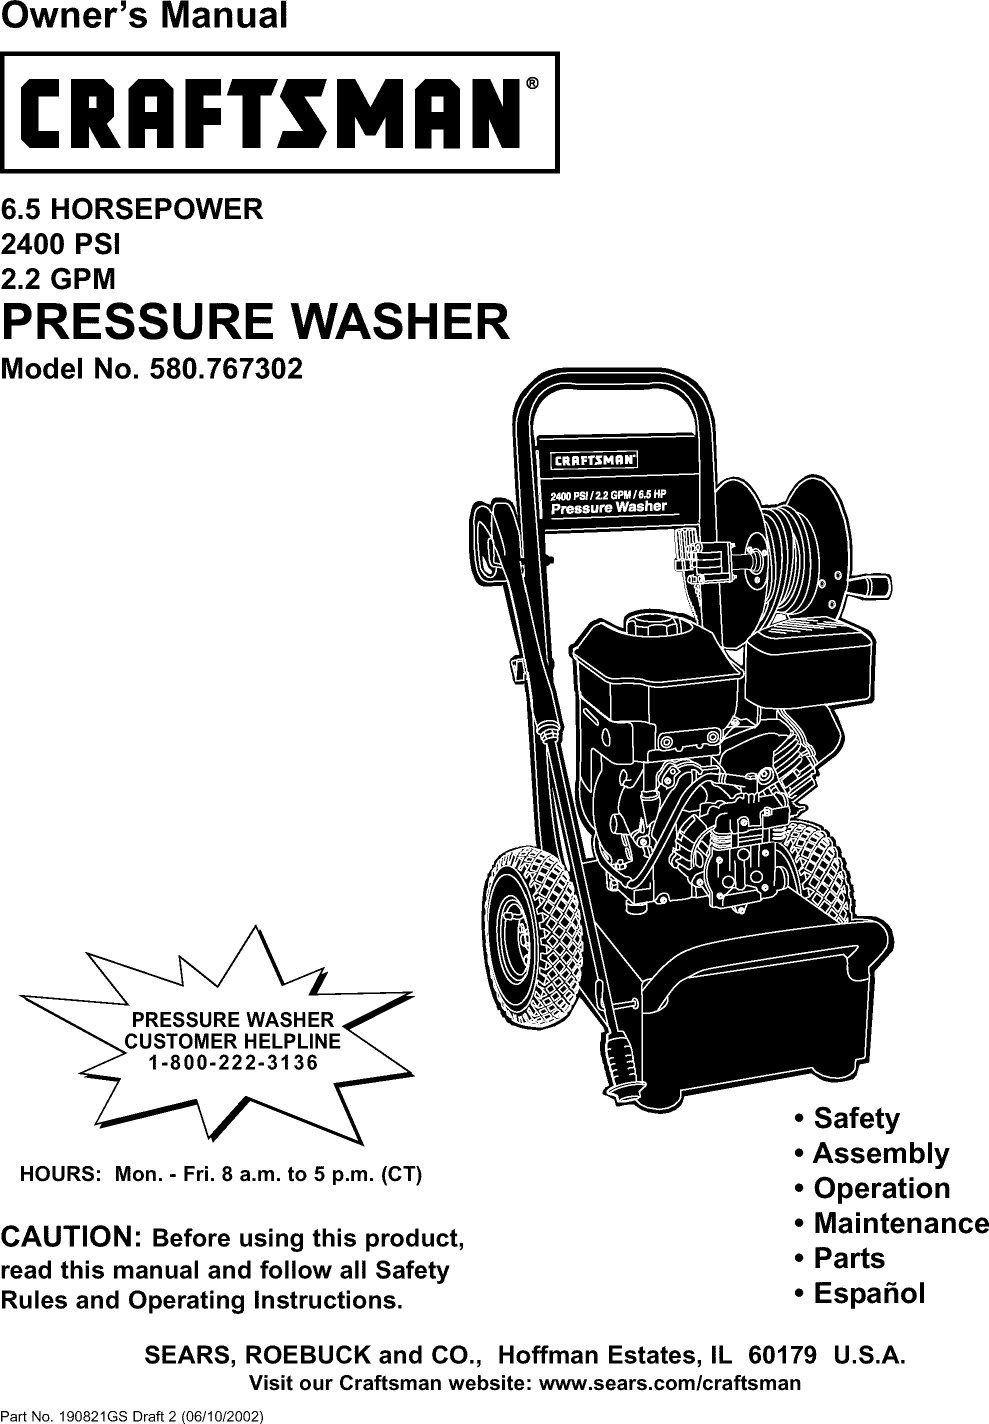 Craftsman 580767302 User Manual PRESSURE WASHER Manuals